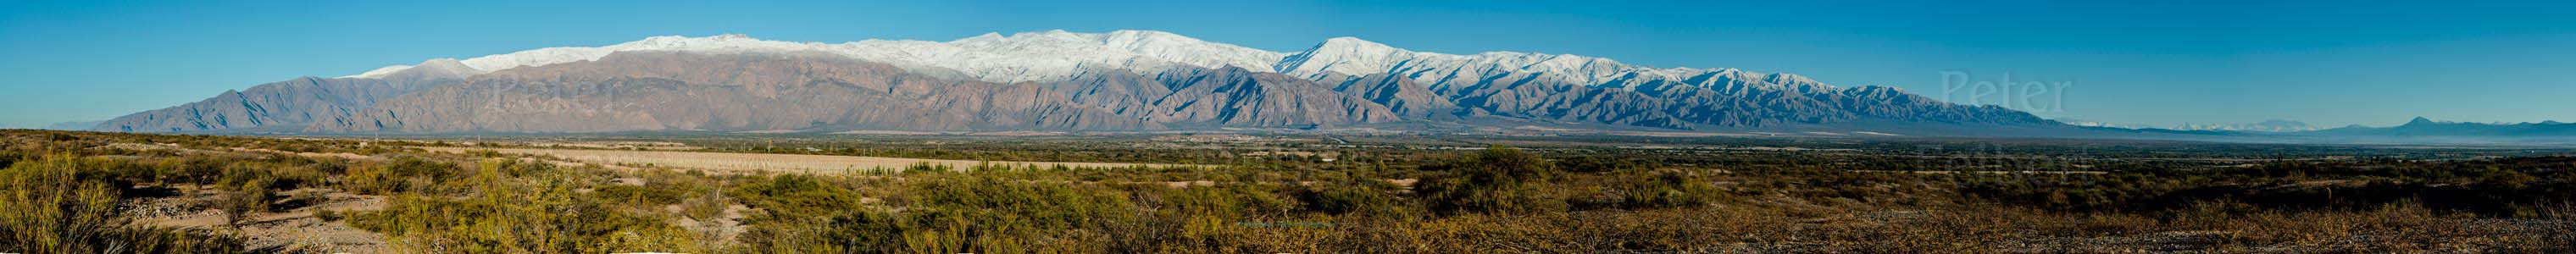 Snow in the mountains behind the town of Cafayate, Calchaquí valley, Salta, Argentina.